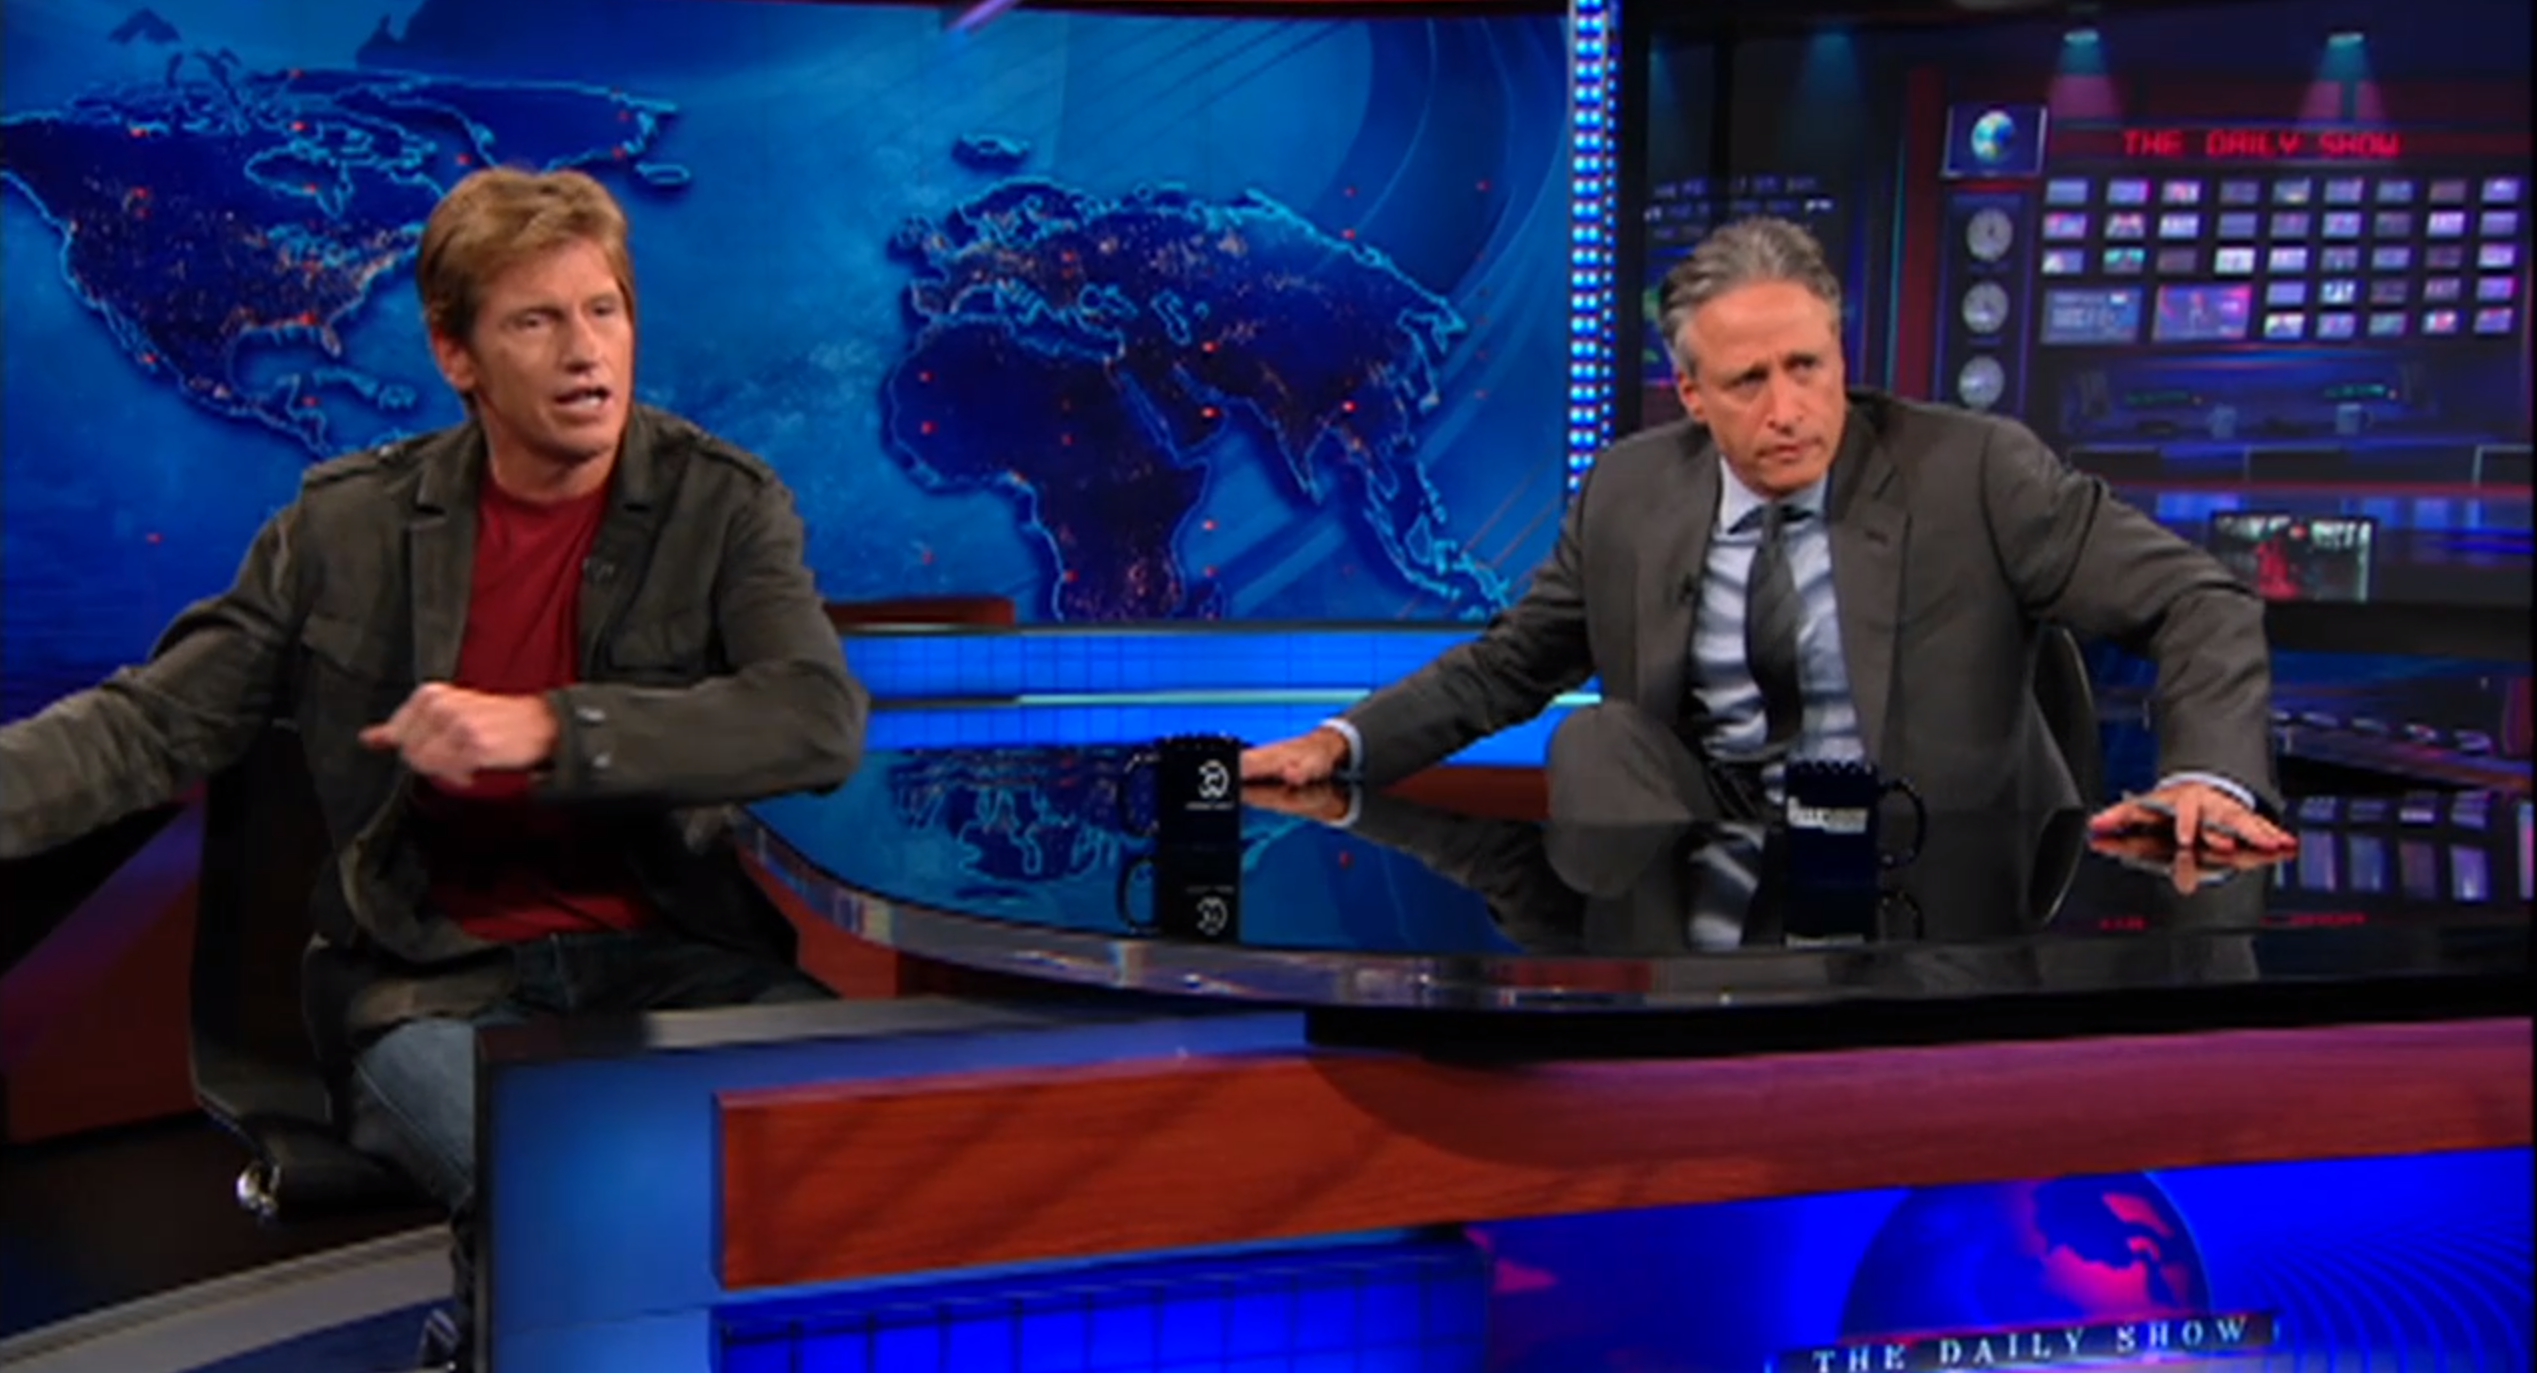 Denis Leary and Jon Stewart have long been friends, so every time the actor appeared on the show, the two comedians would opt to make fun of one another rather than conduct an interview, leaving the audience in stitches